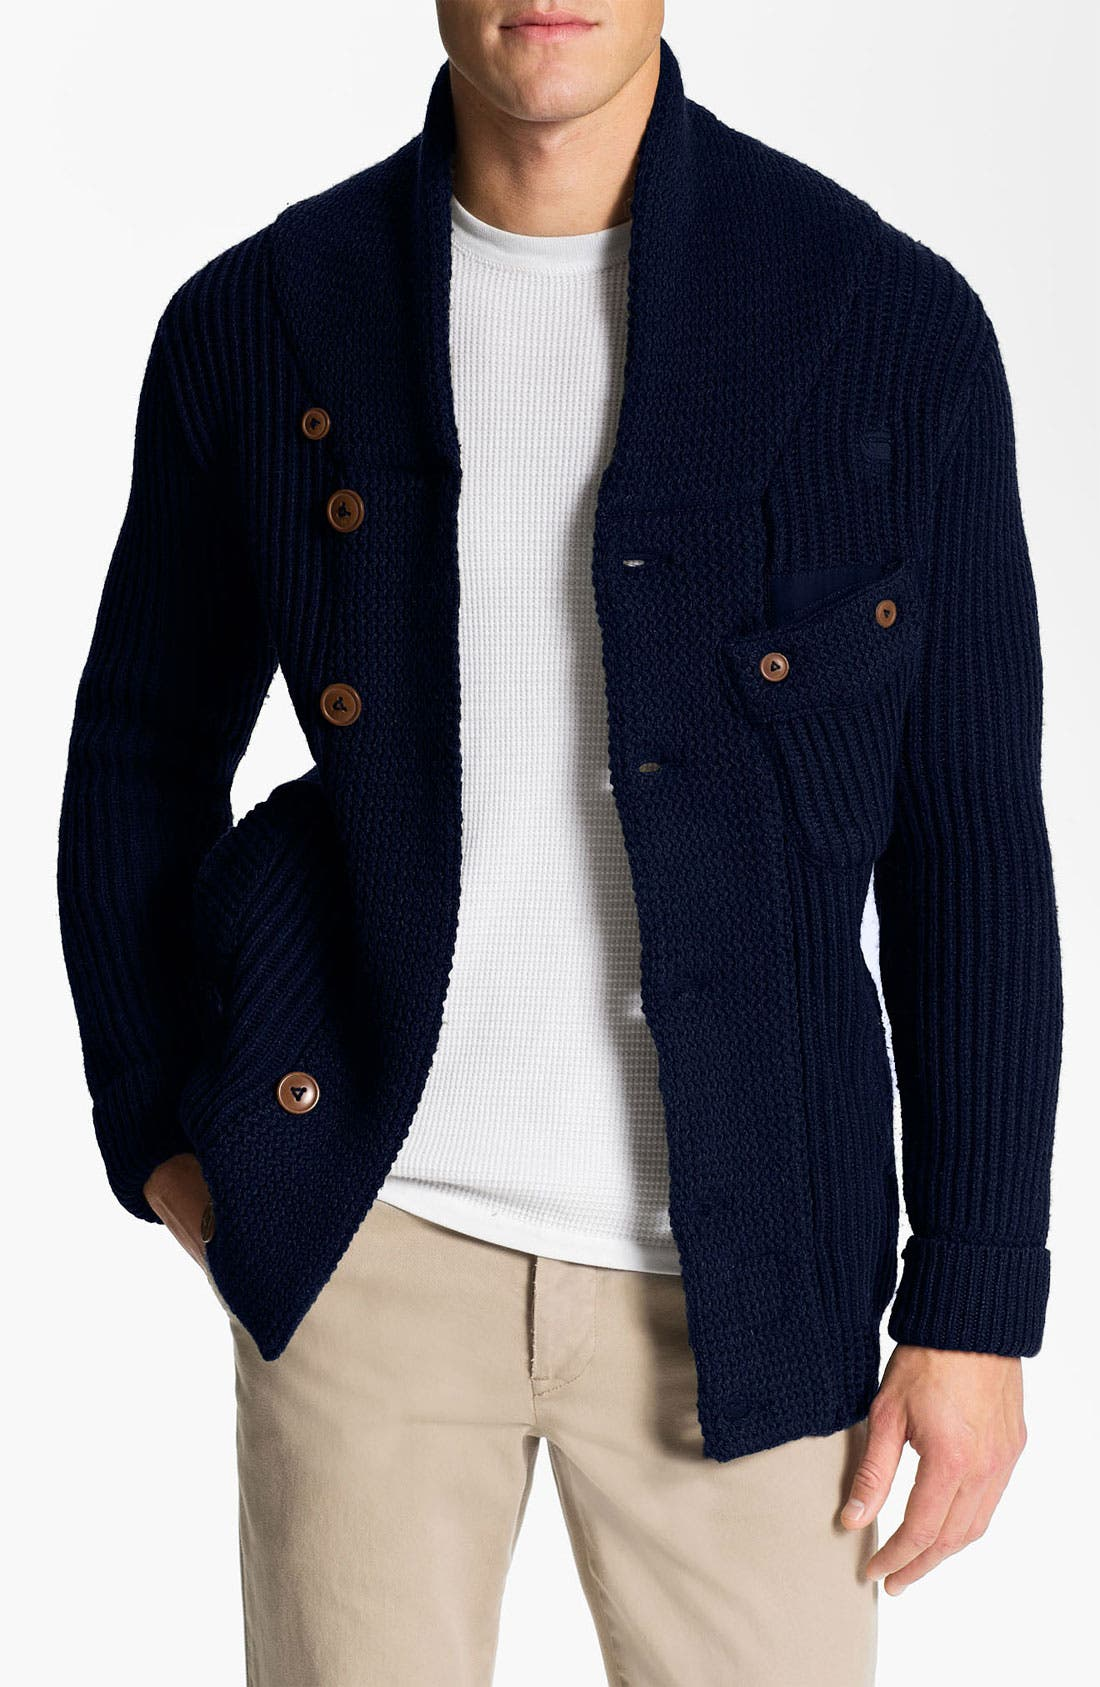 Alternate Image 1 Selected - G-Star Raw 'Oxford' Shawl Collar Sweater